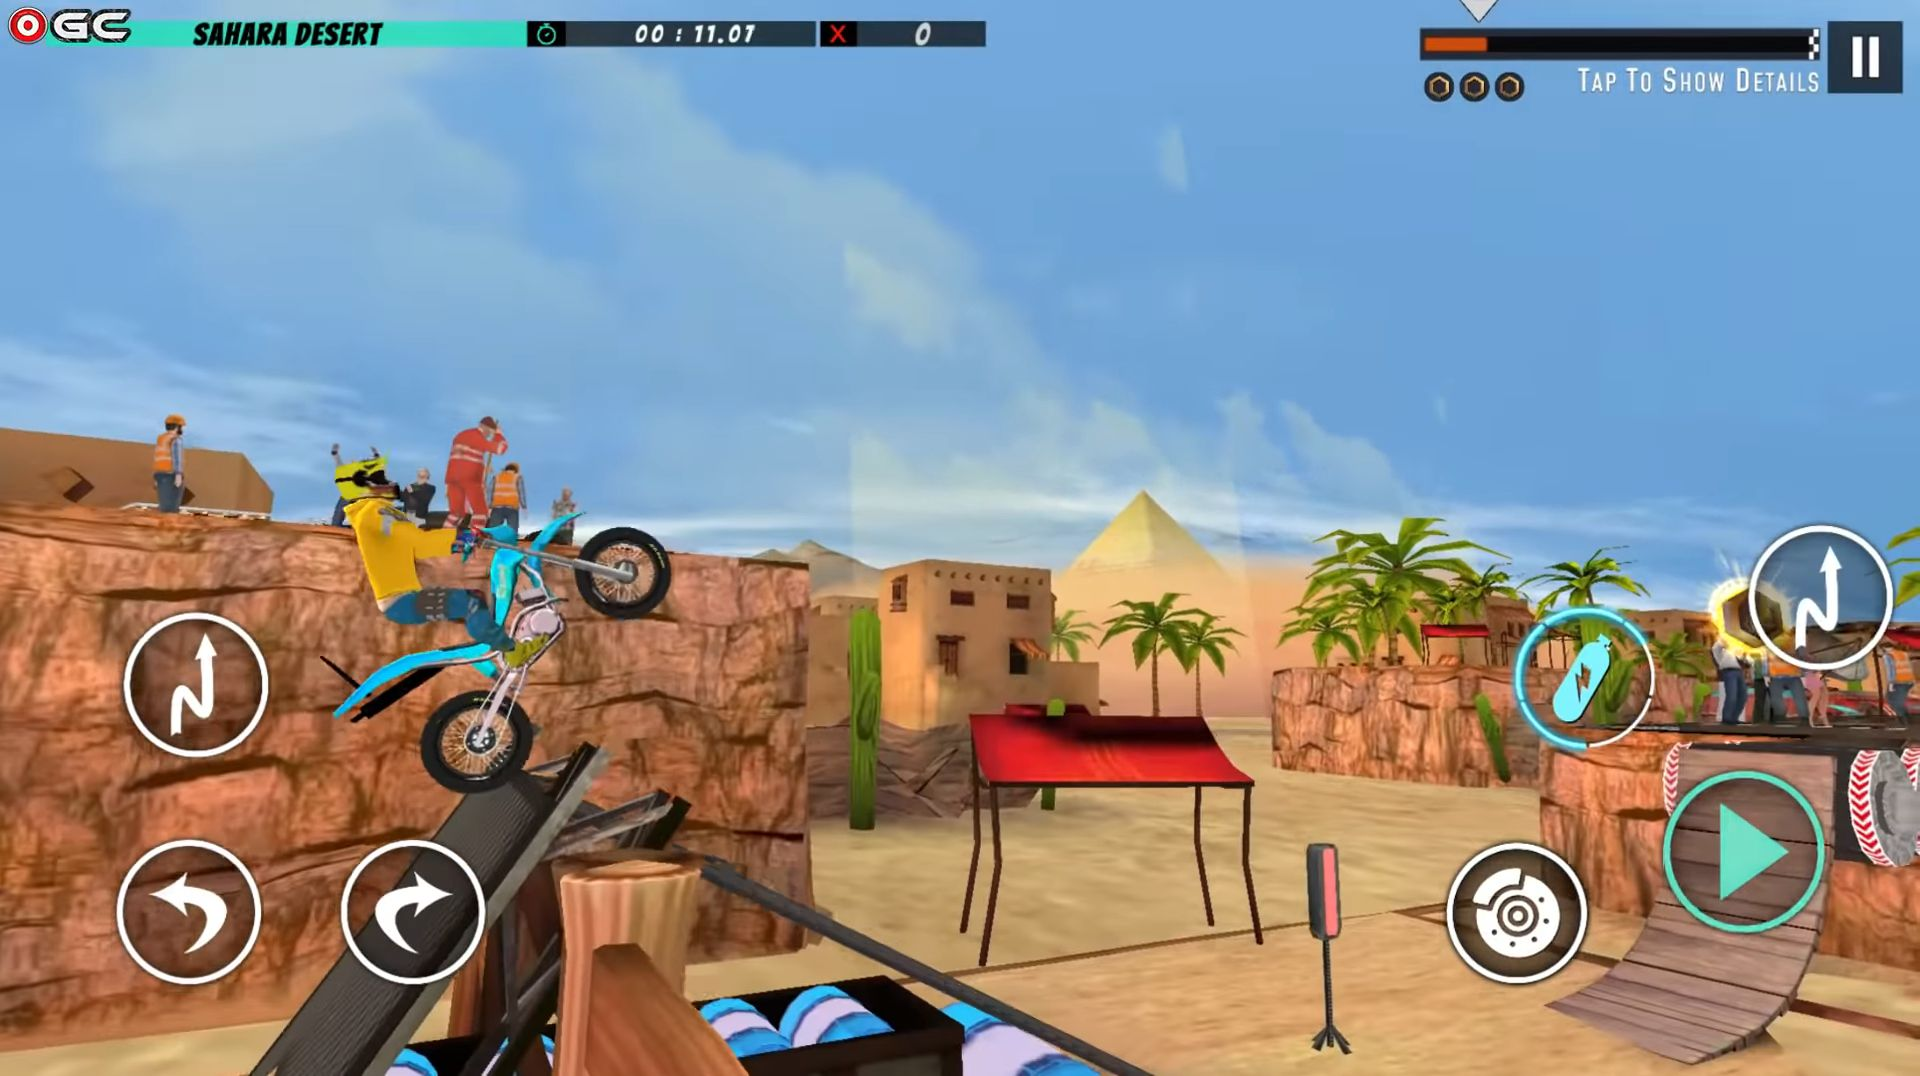 Bike Stunt 2 New Motorcycle Game - New Games 2020 para Android